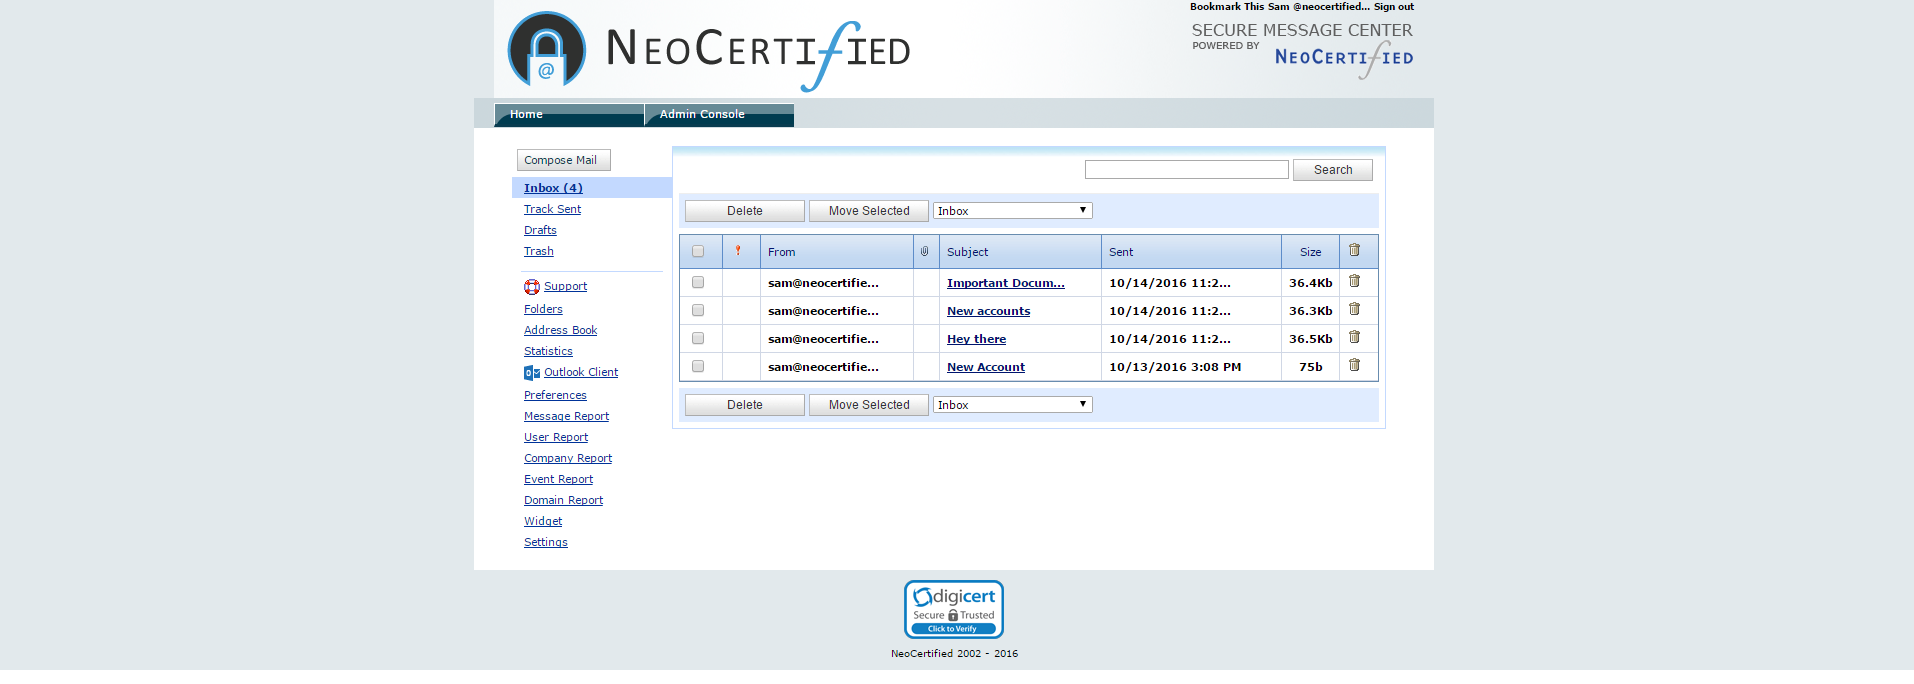 NeoCertified Secure Email Demo - ncm4.PNG